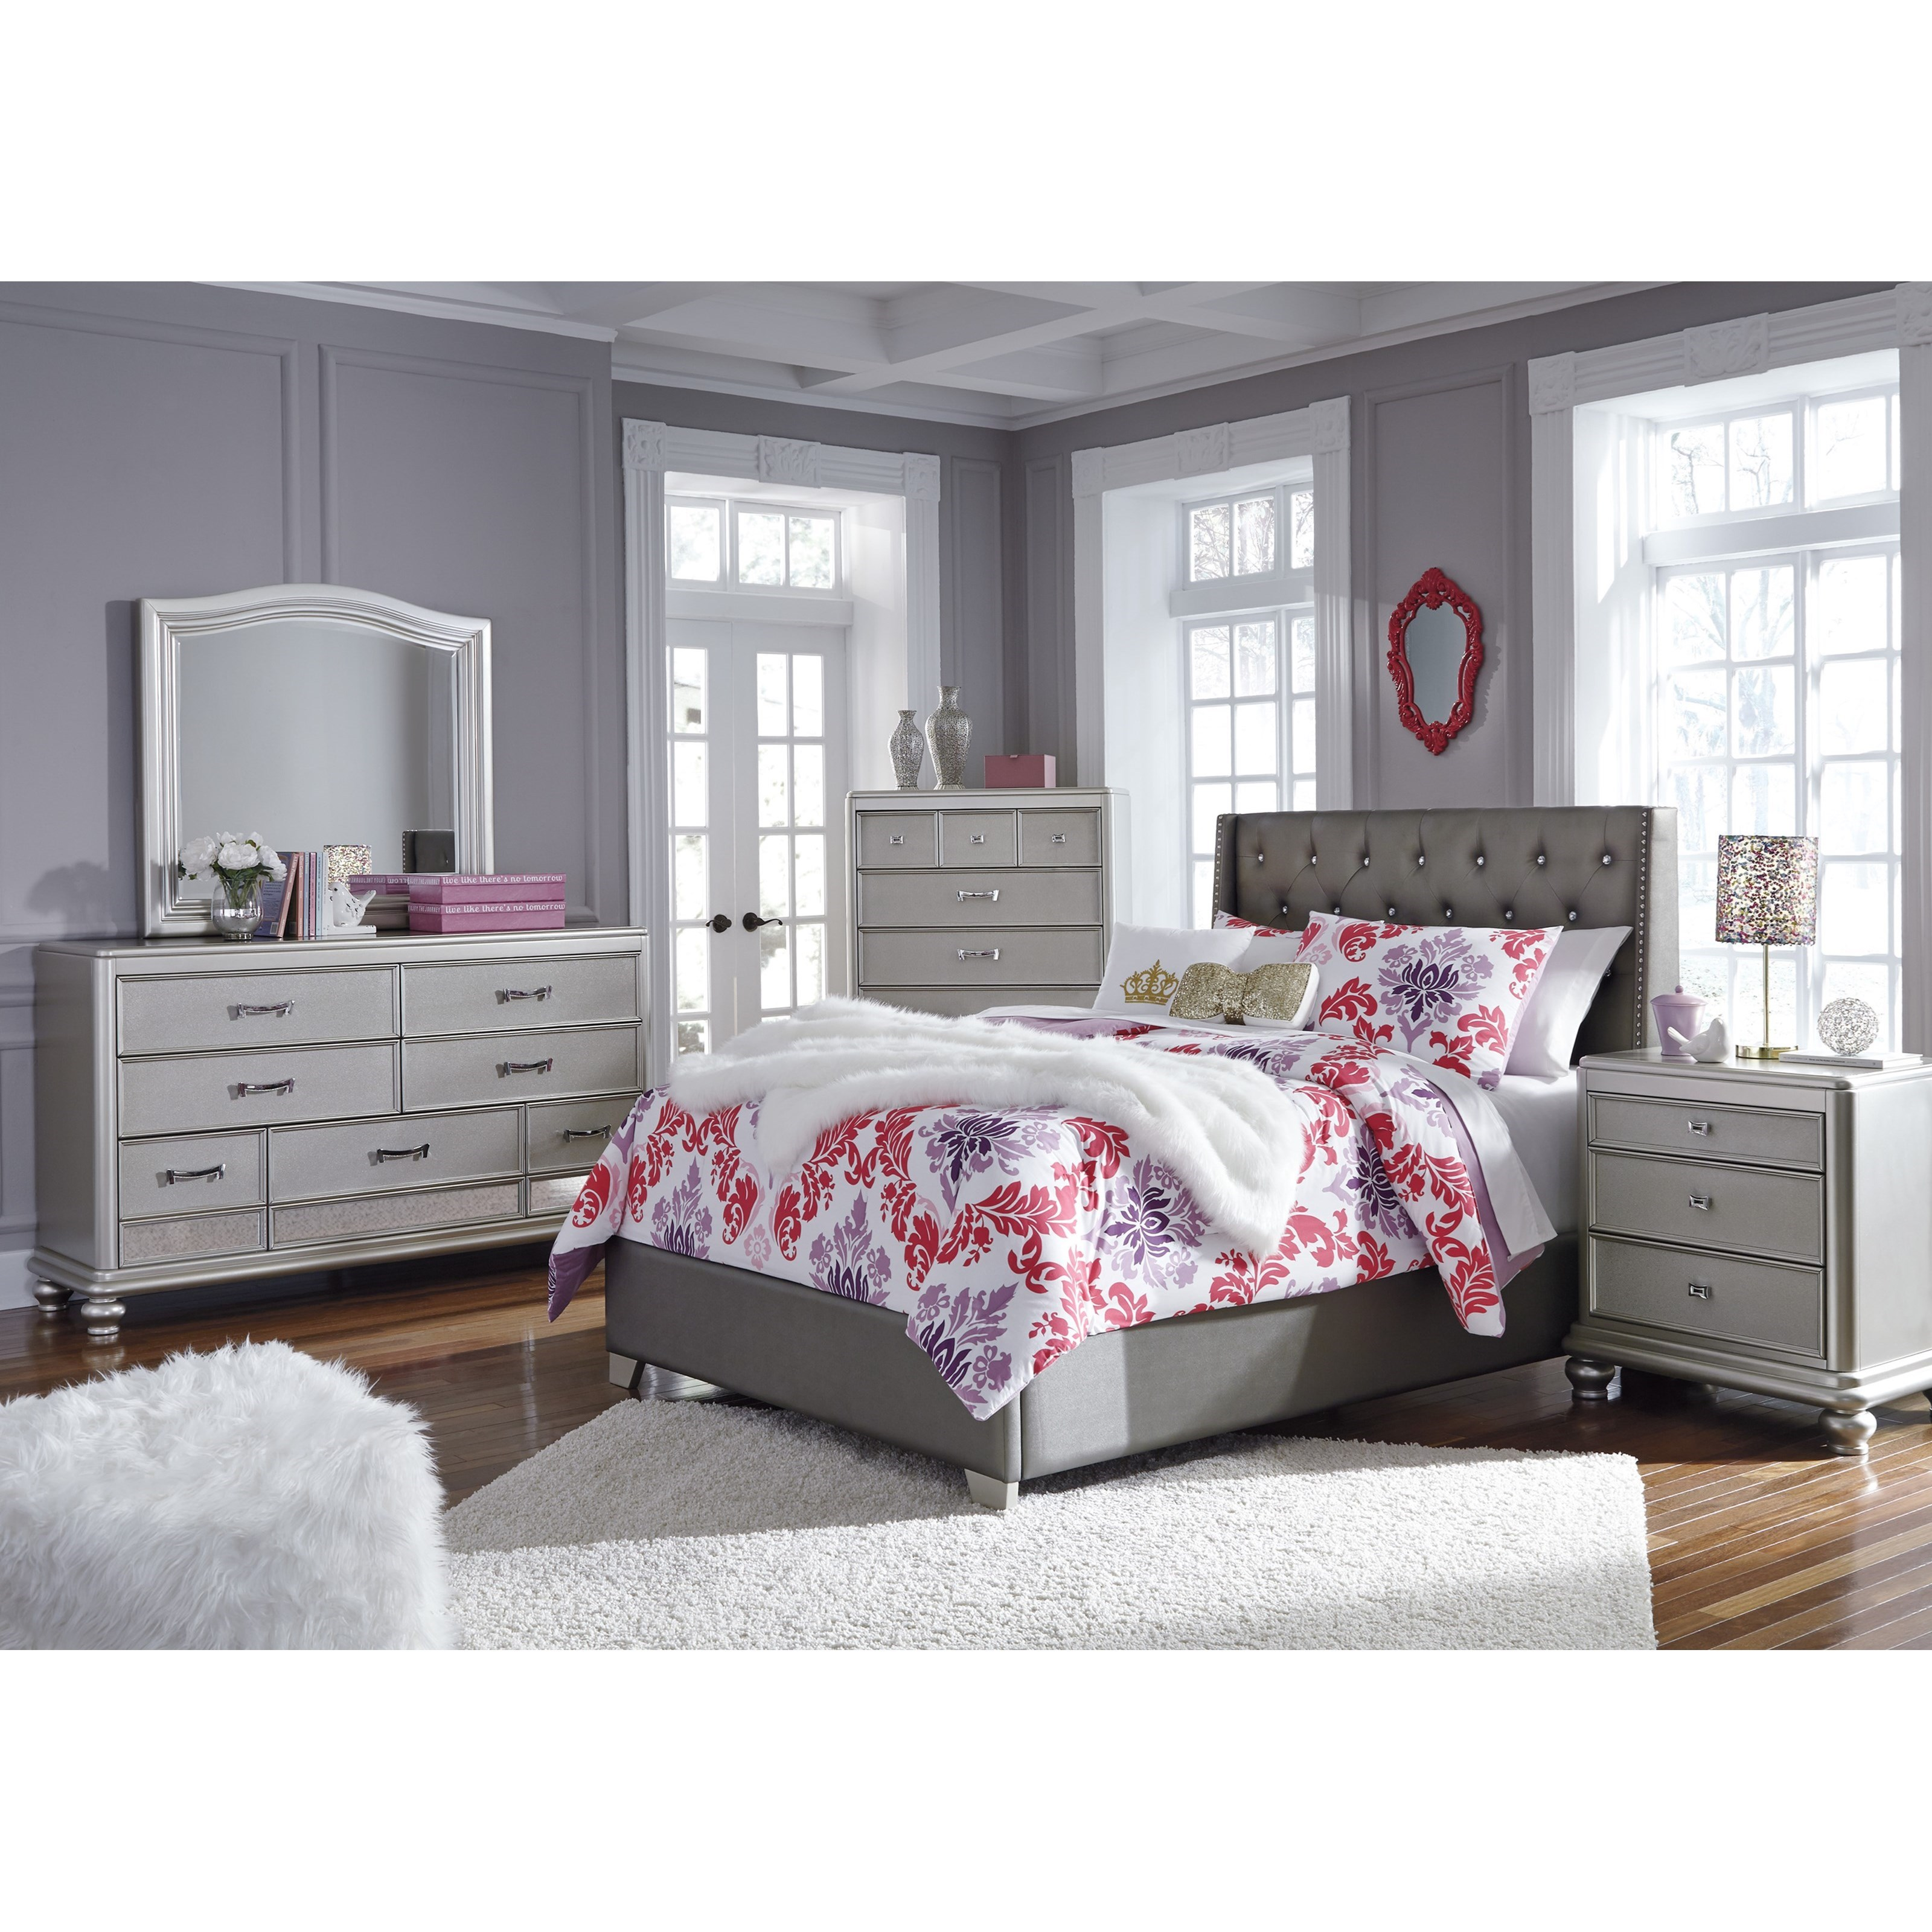 Signature Design By Ashley Coralayne Full Bedroom Group Del Sol Furniture Bedroom Groups